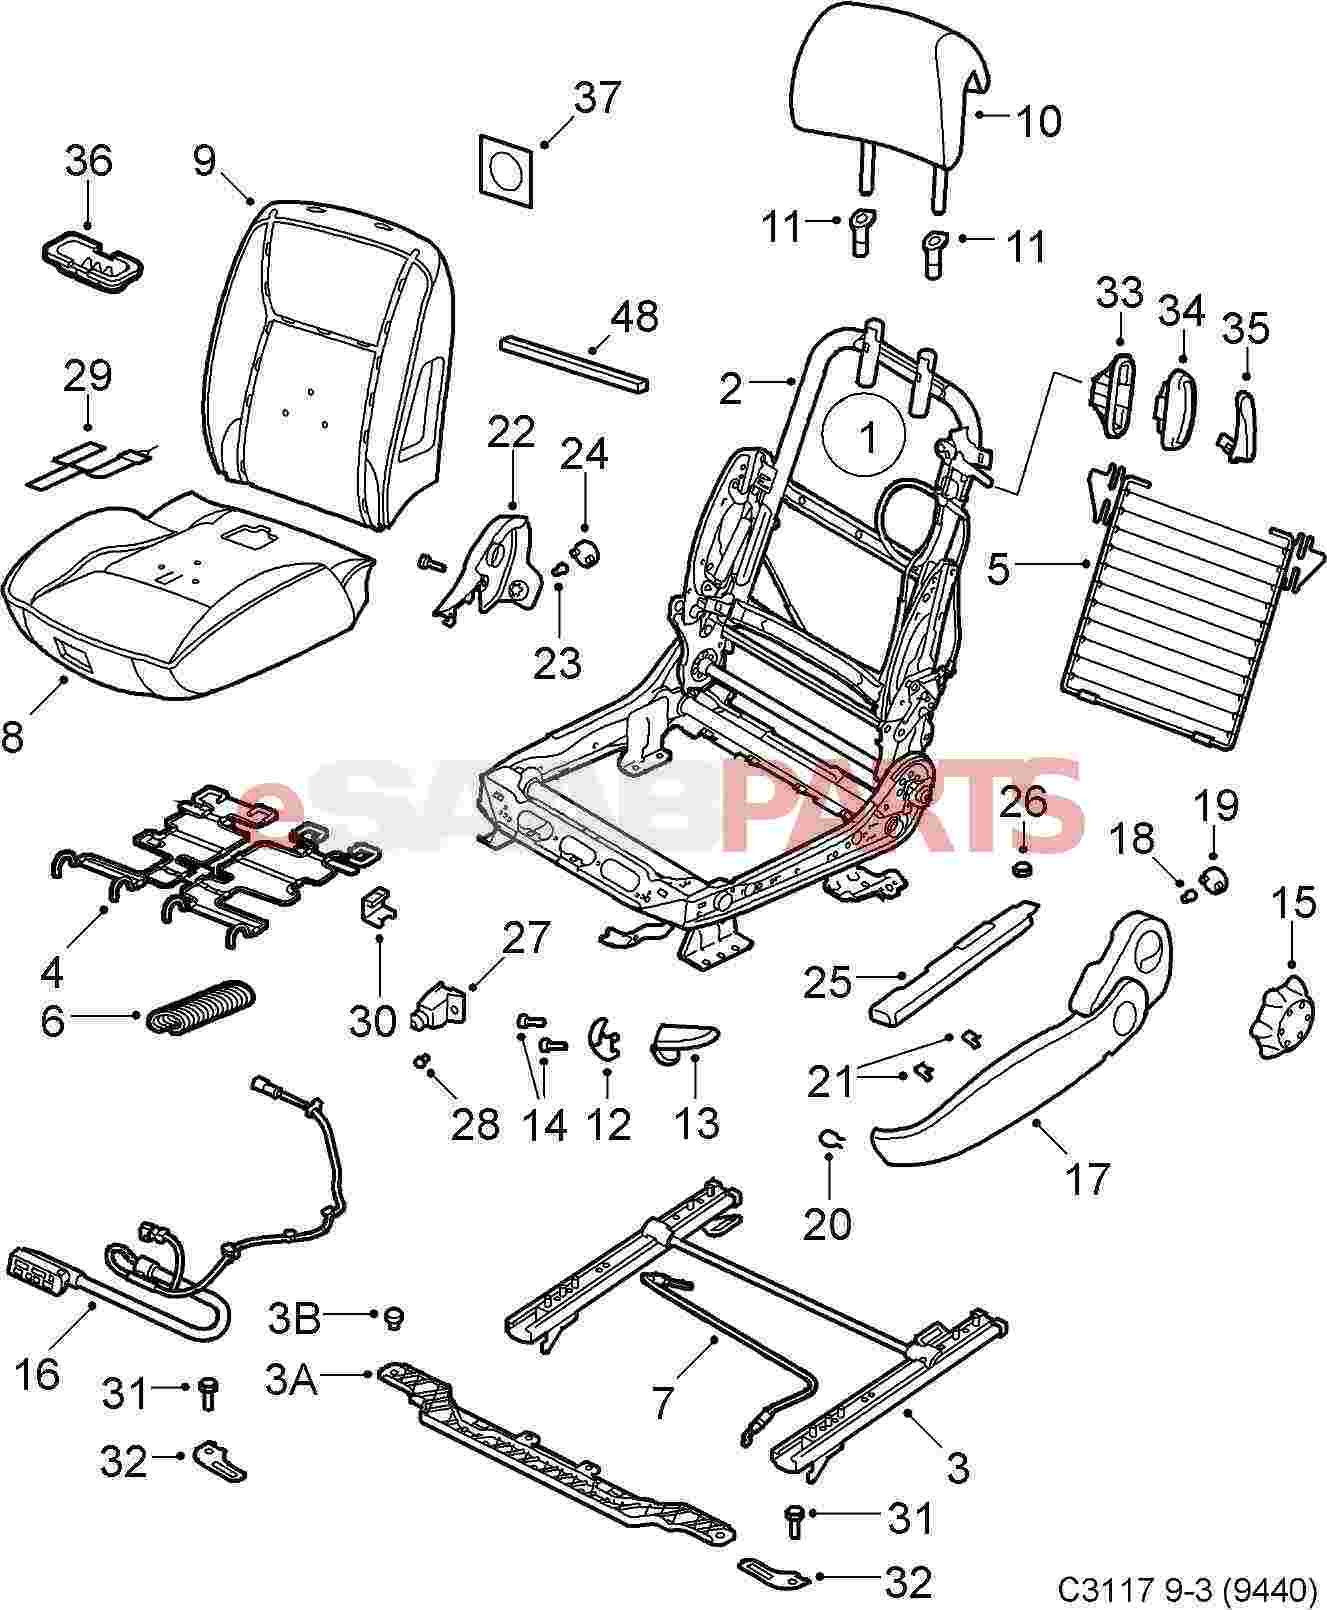 airbag wiring harness